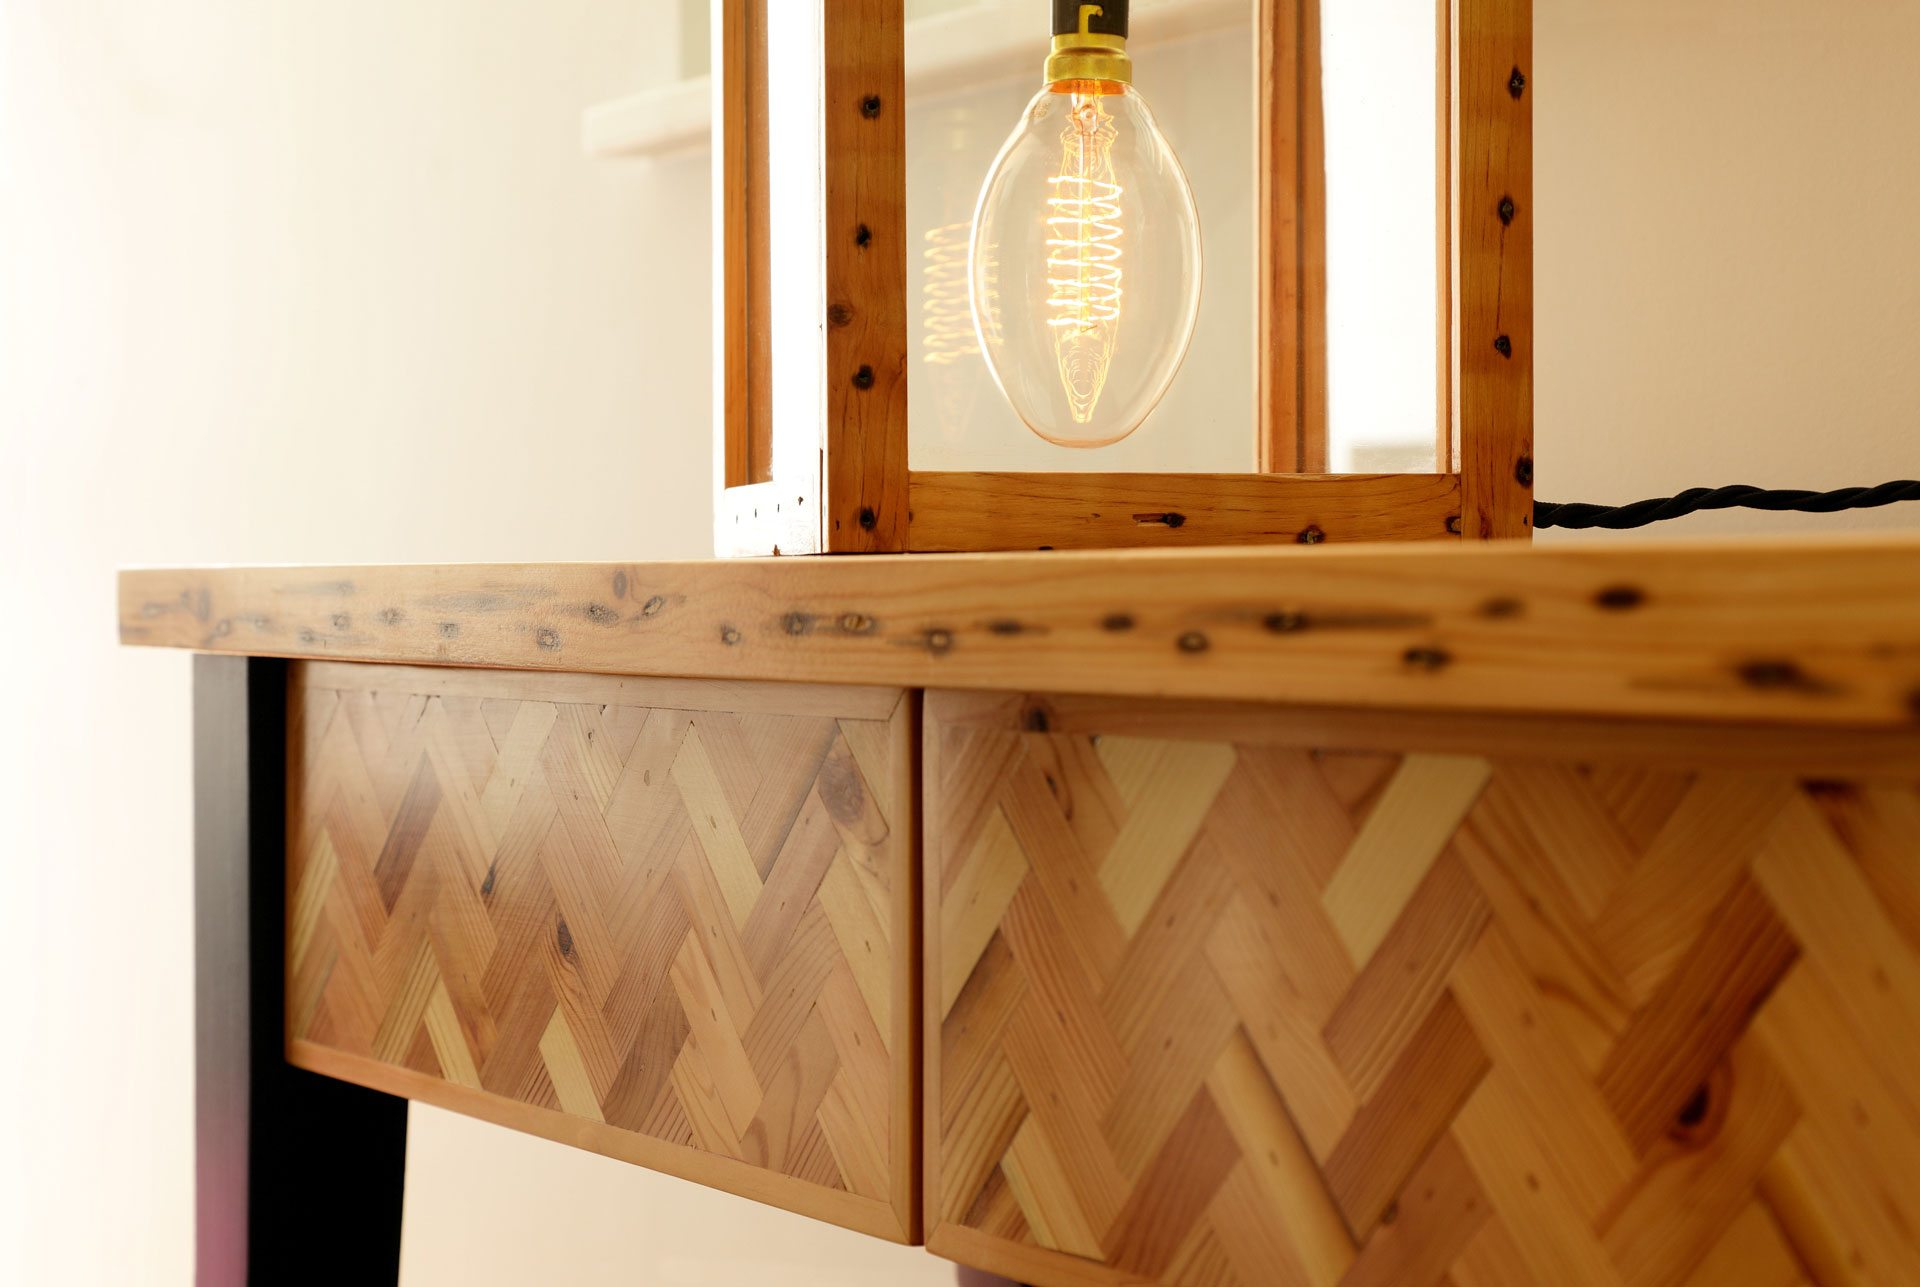 Parquet table modern lamp lightbulb